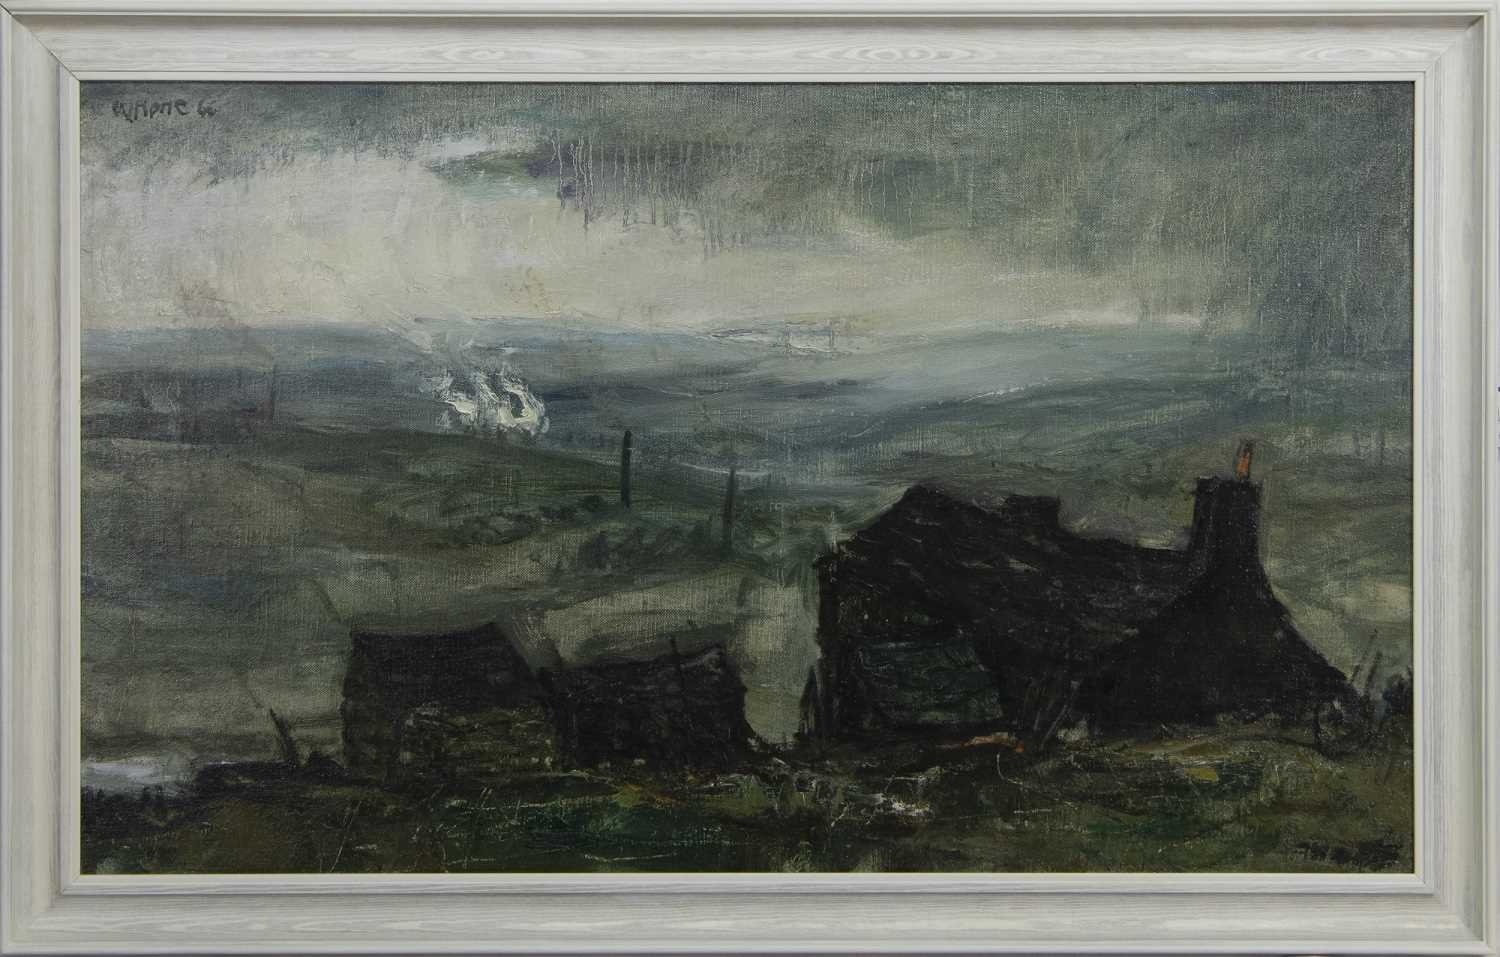 Lot 644 - THE OLD FARMHOUSE, AN OIL BY HERBERT WHONE